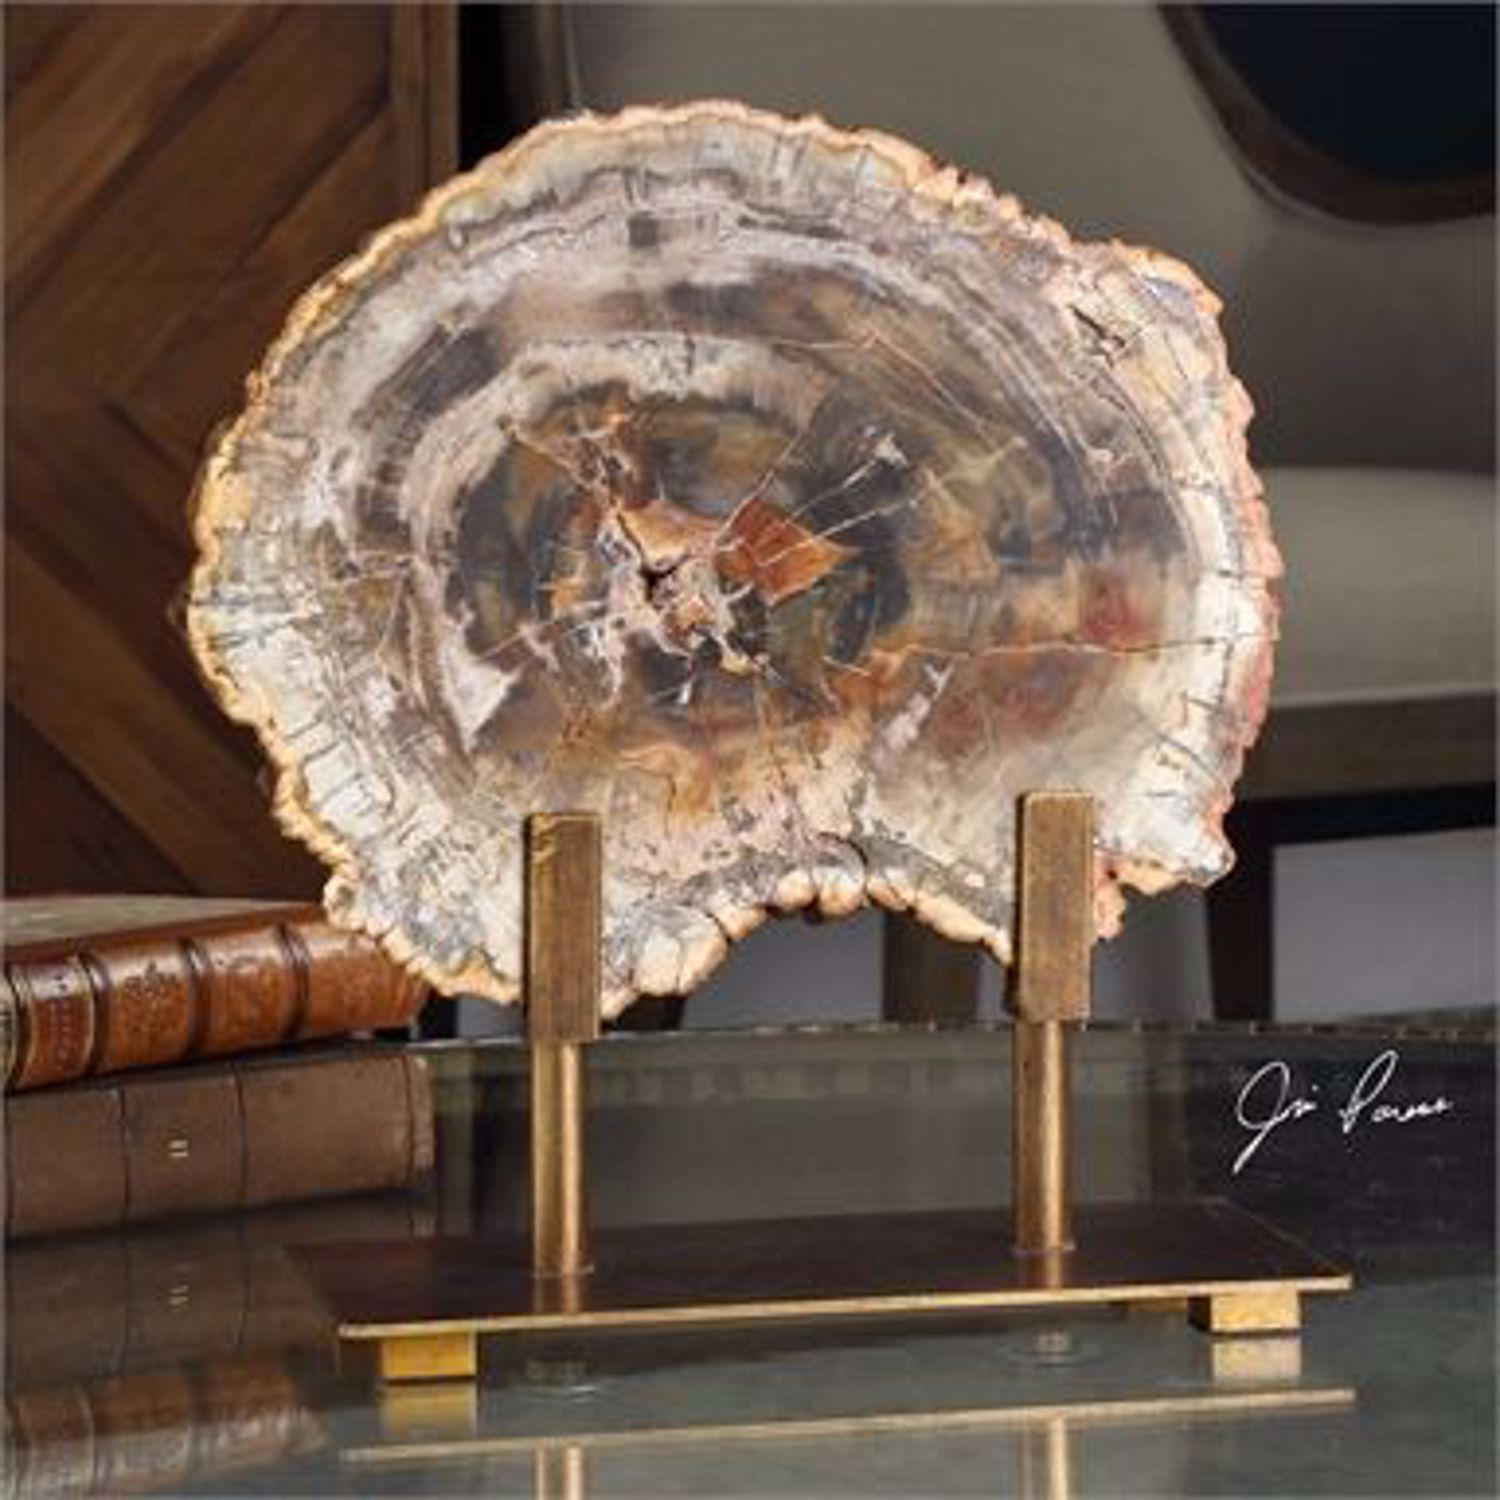 Shop The Best Deals On Petrified Wood At Texas Furniture Hut